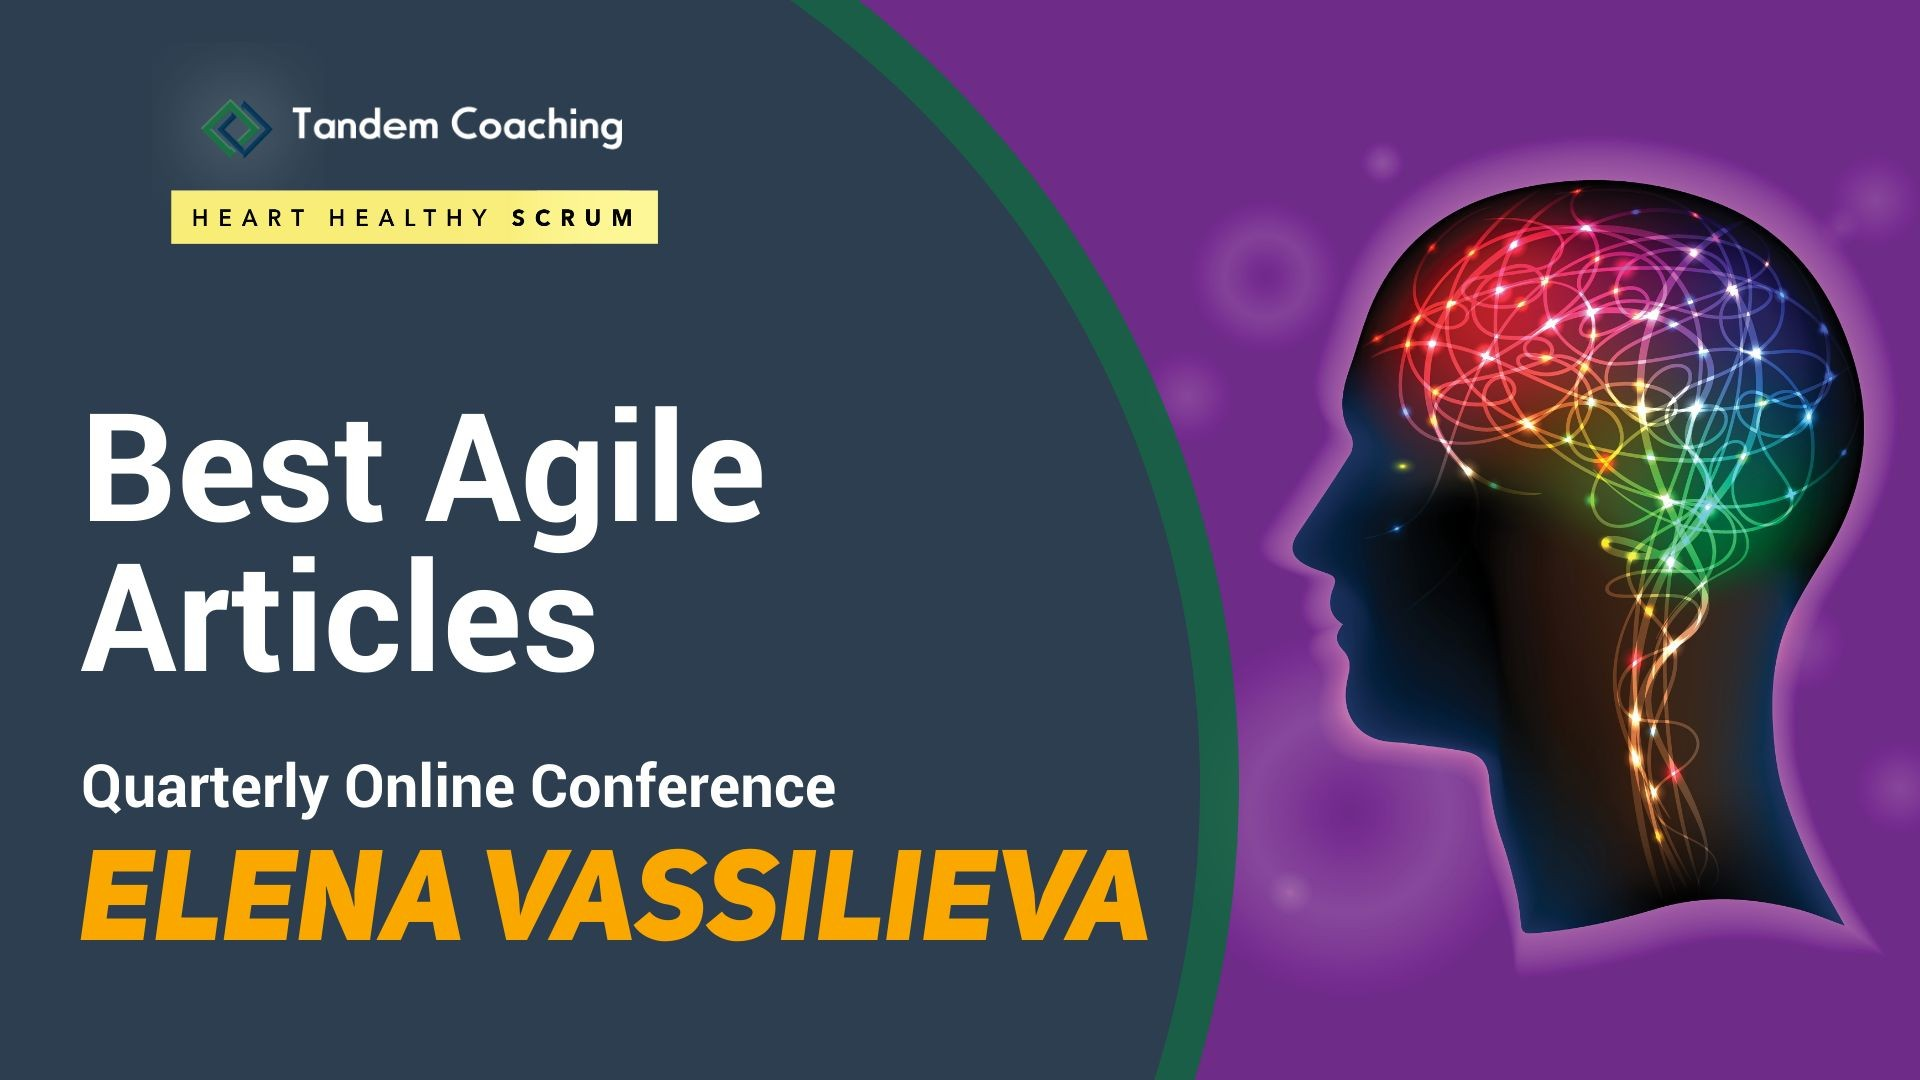 Best Agile Articles Online Conference - Elena Vassilieva